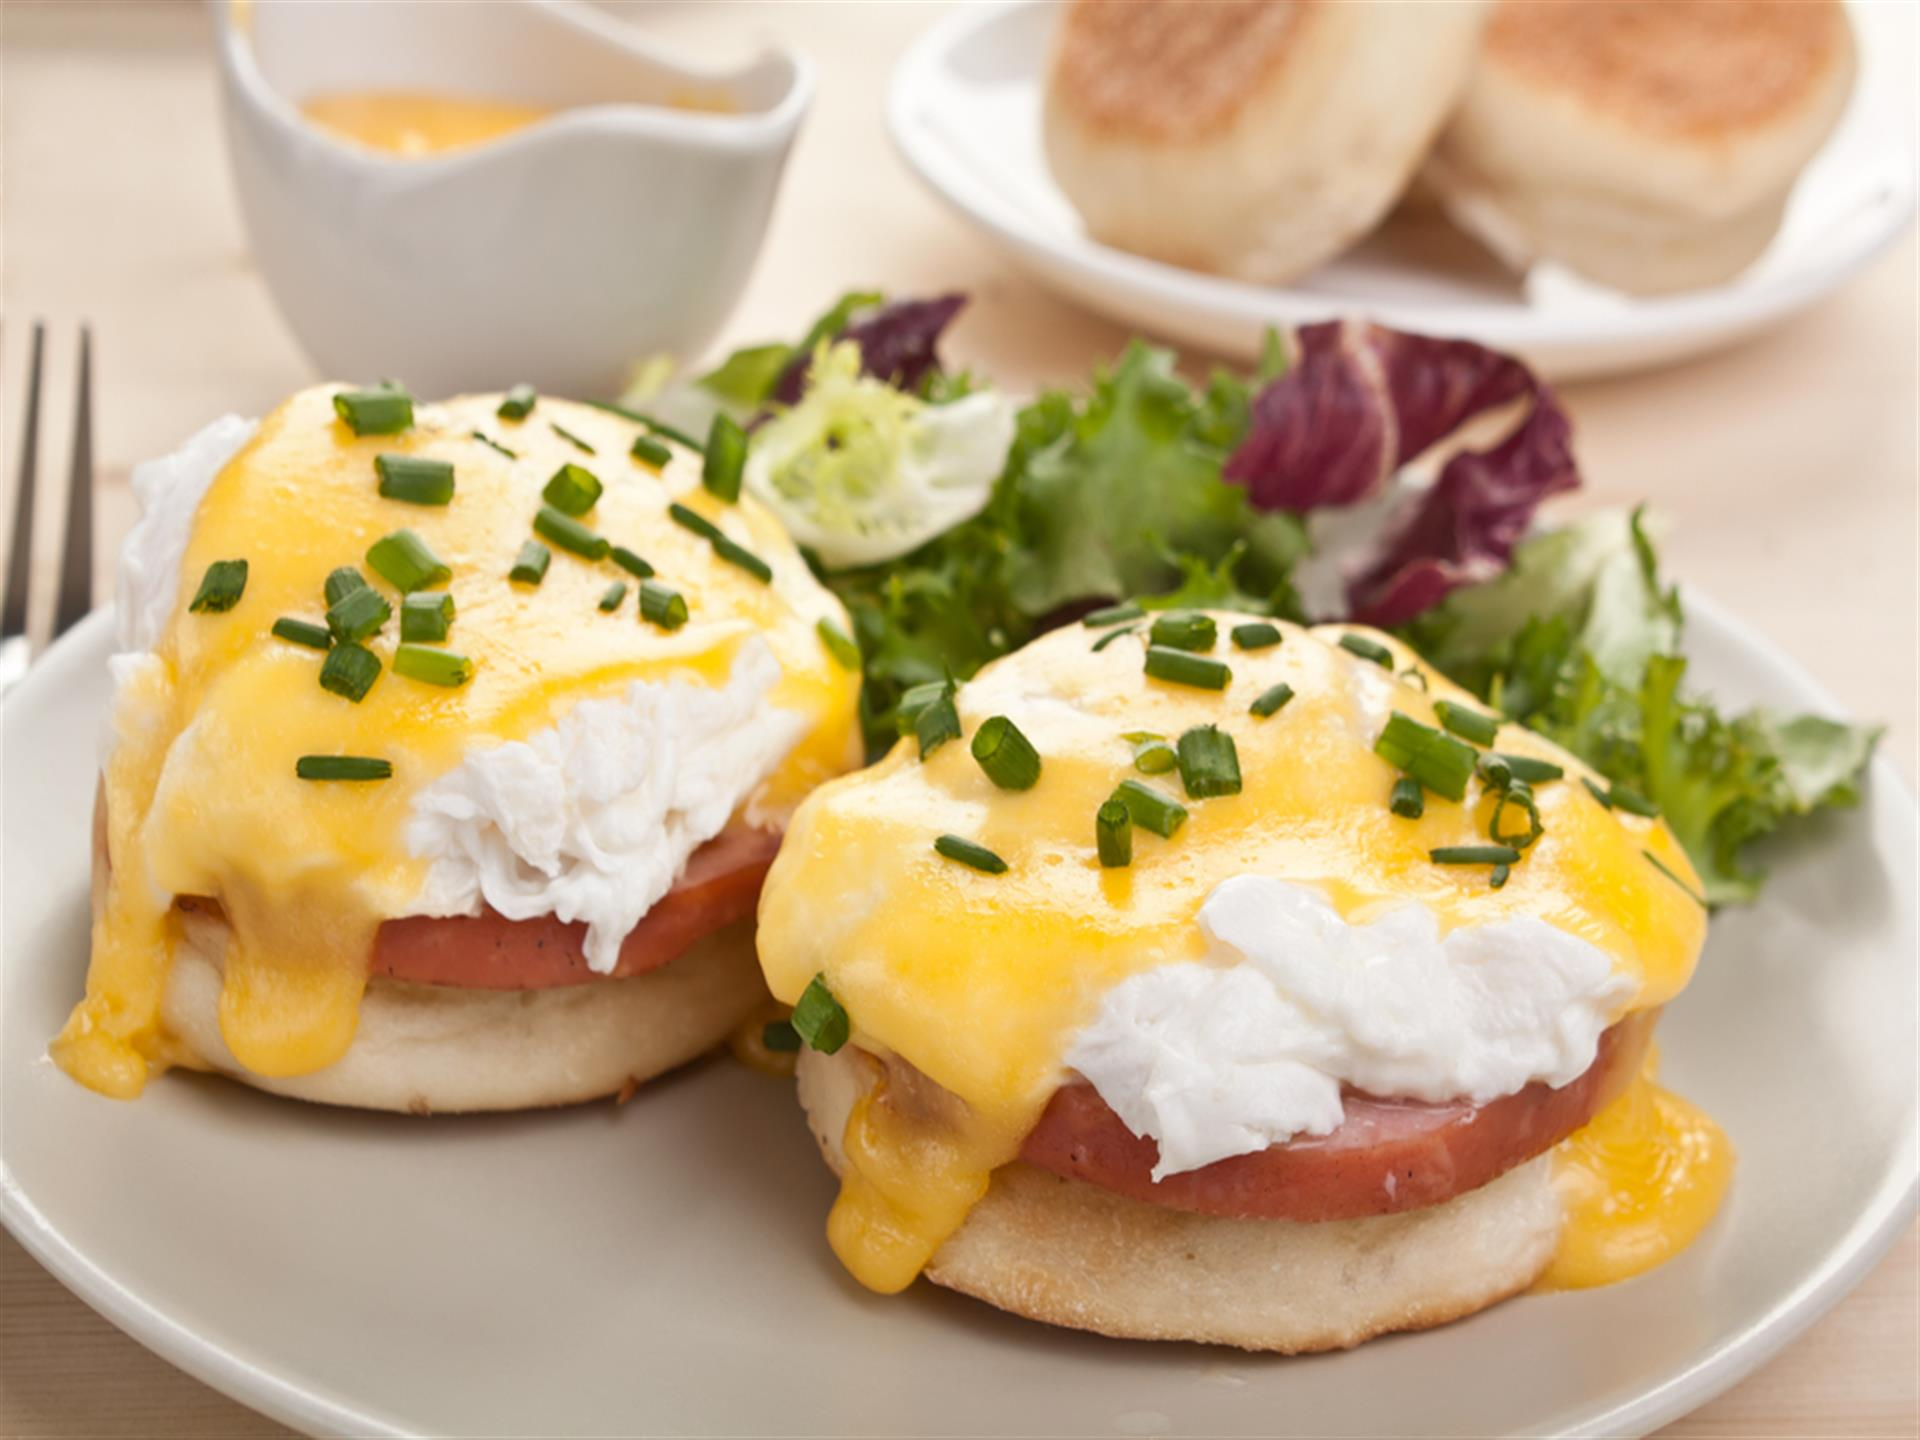 Eggs benedict with candian bacon and side salad